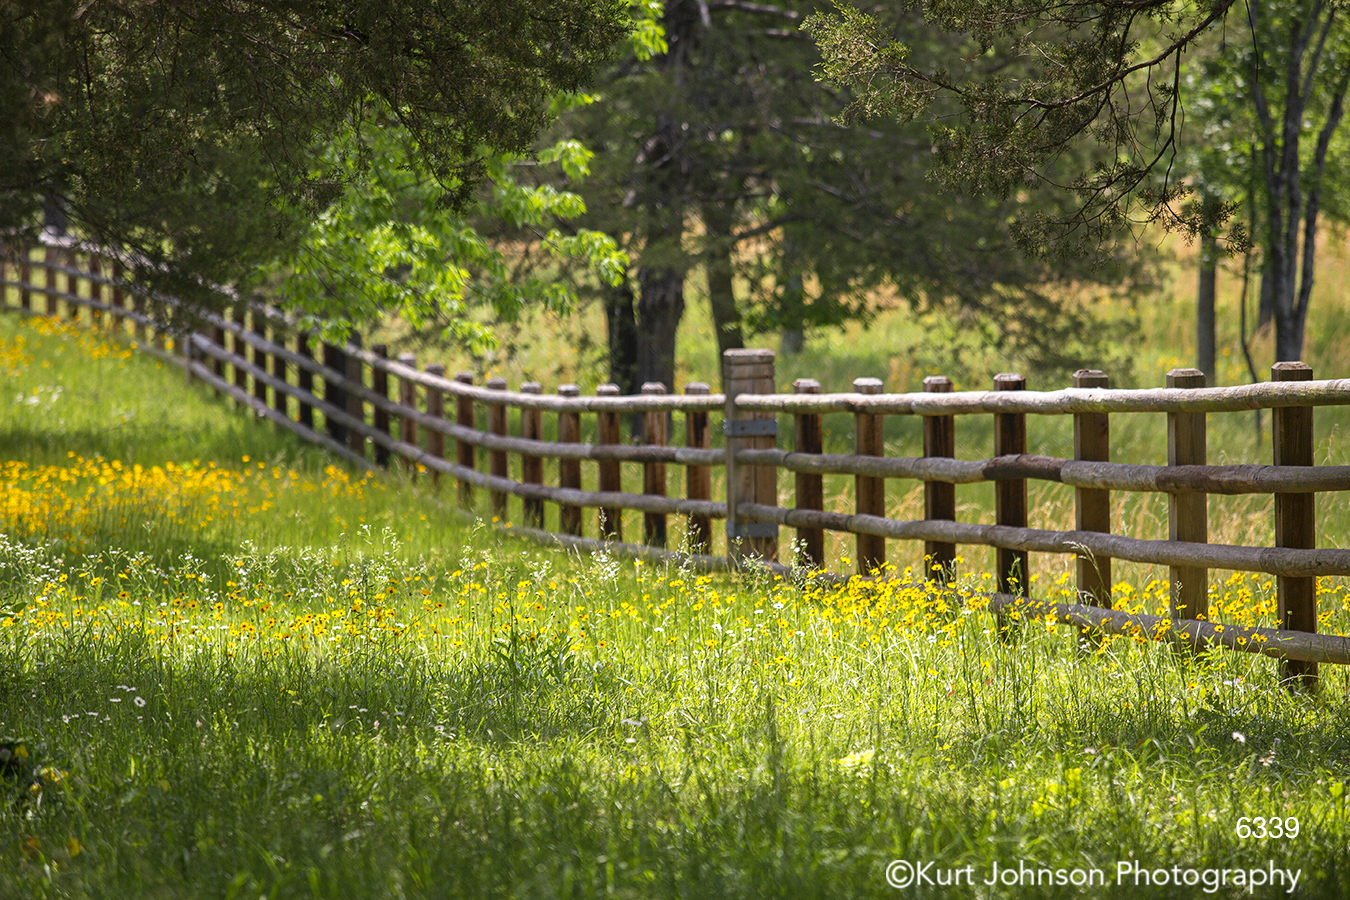 green grass midwest yellow flowers field fence country trees